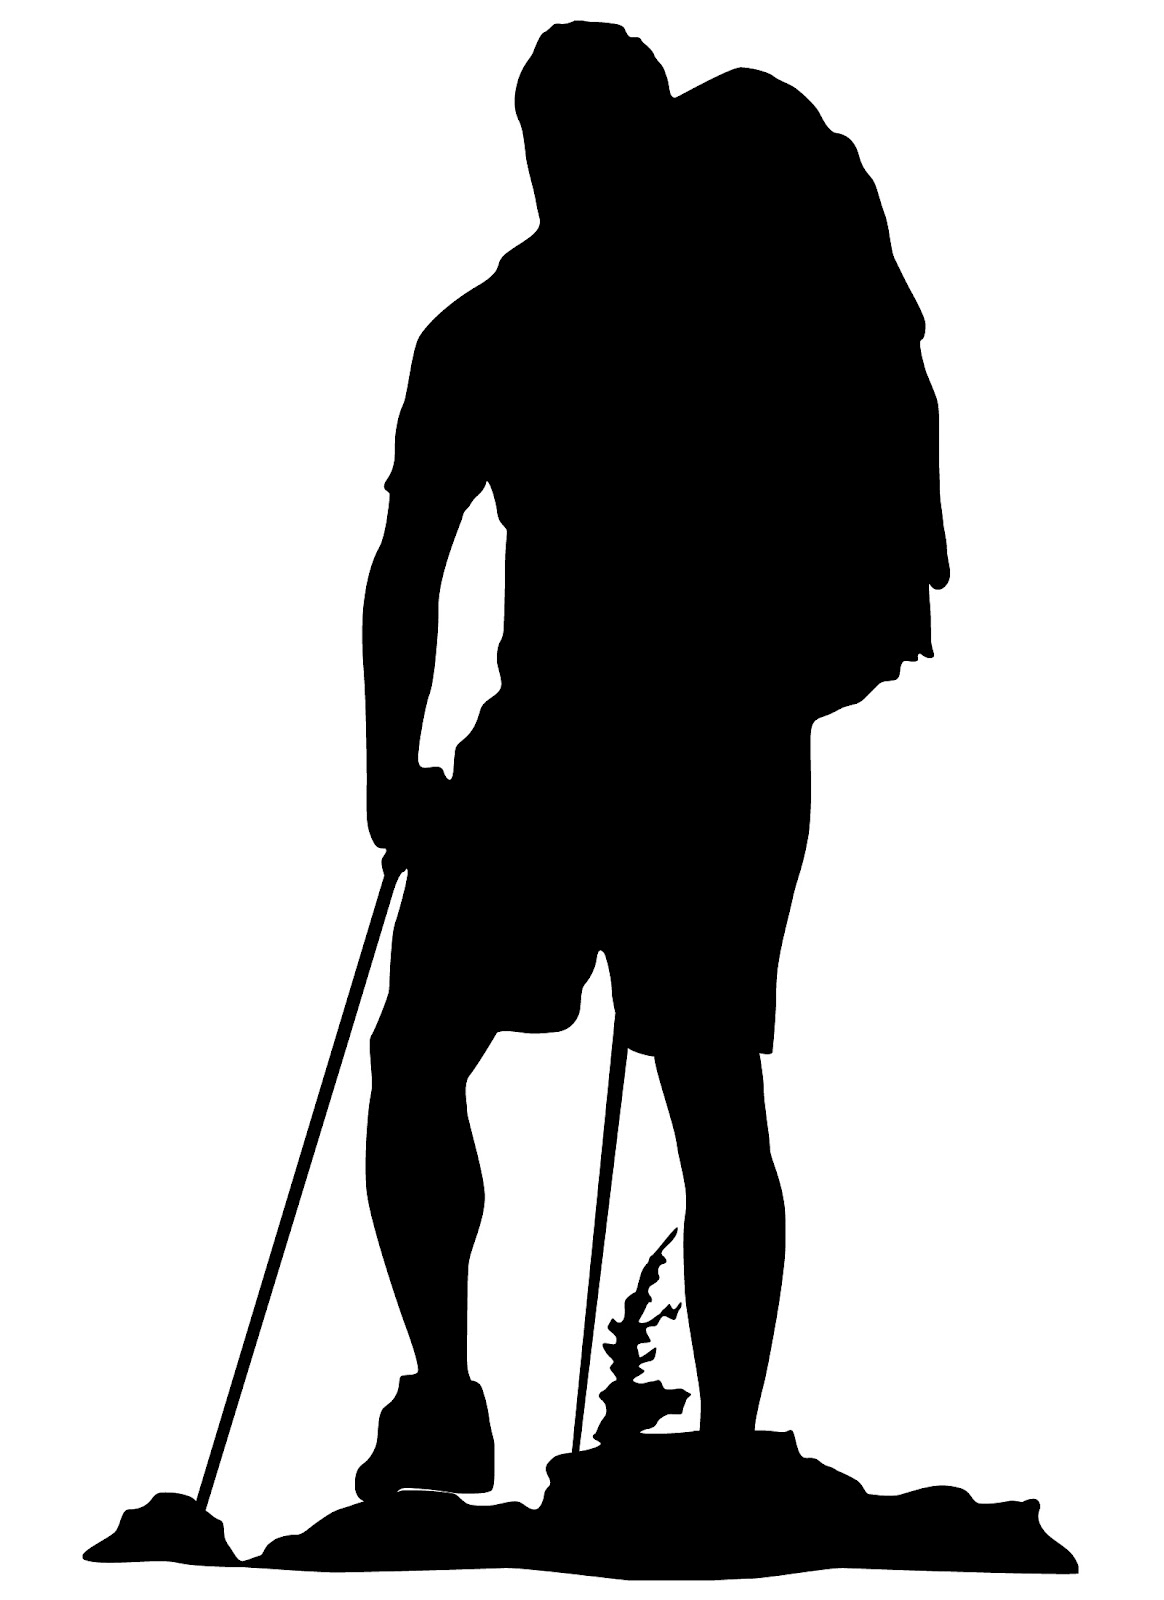 Hiker pictures boy scout hiking clip art image - PNG Hiker Free